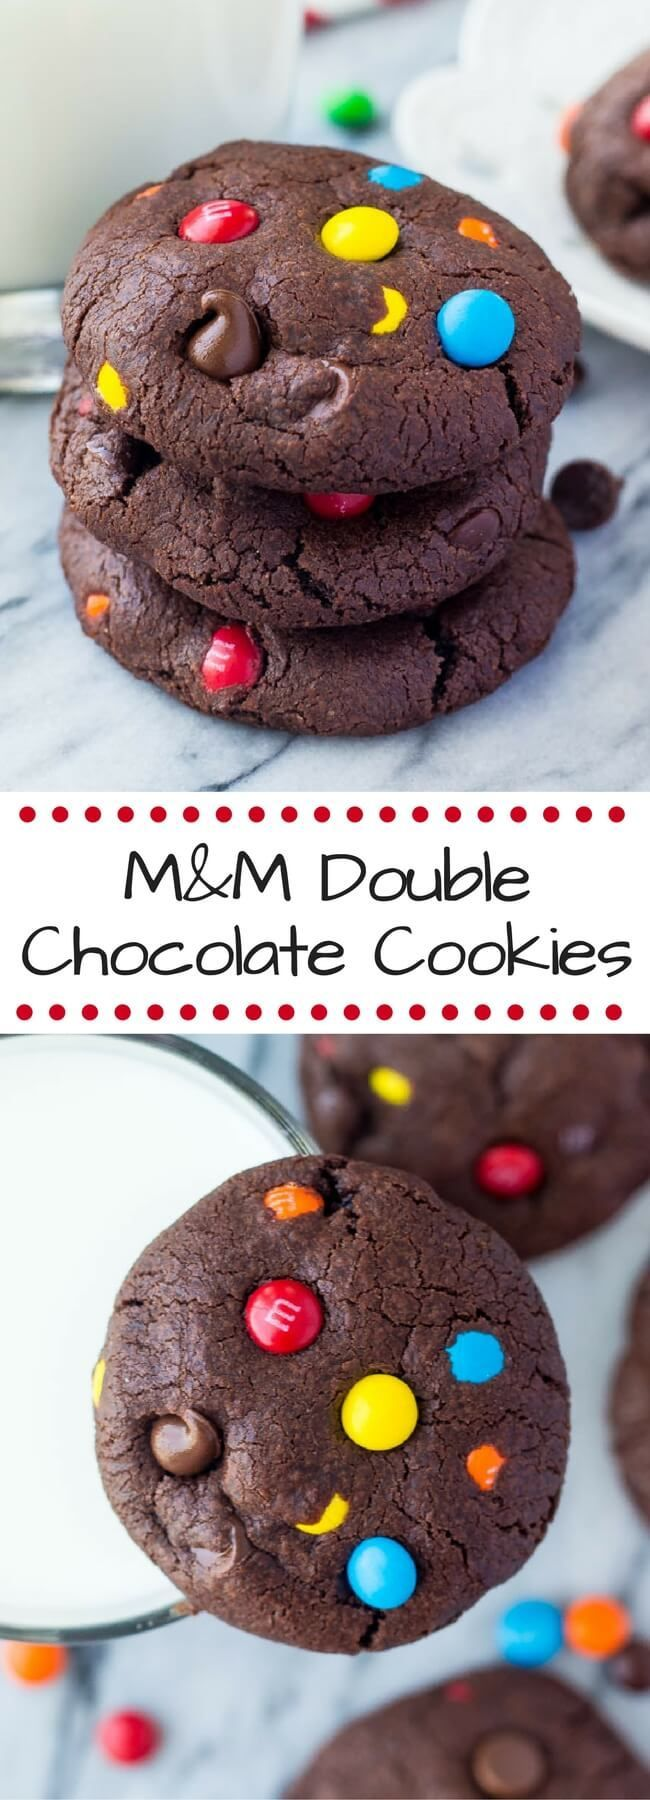 M&M Double Chocolate Cookies Fudgy, chewy, super soft M&M Double Chocolate Cookies! The perfect M&M chocolate chip cookies for true chocolate lovers!